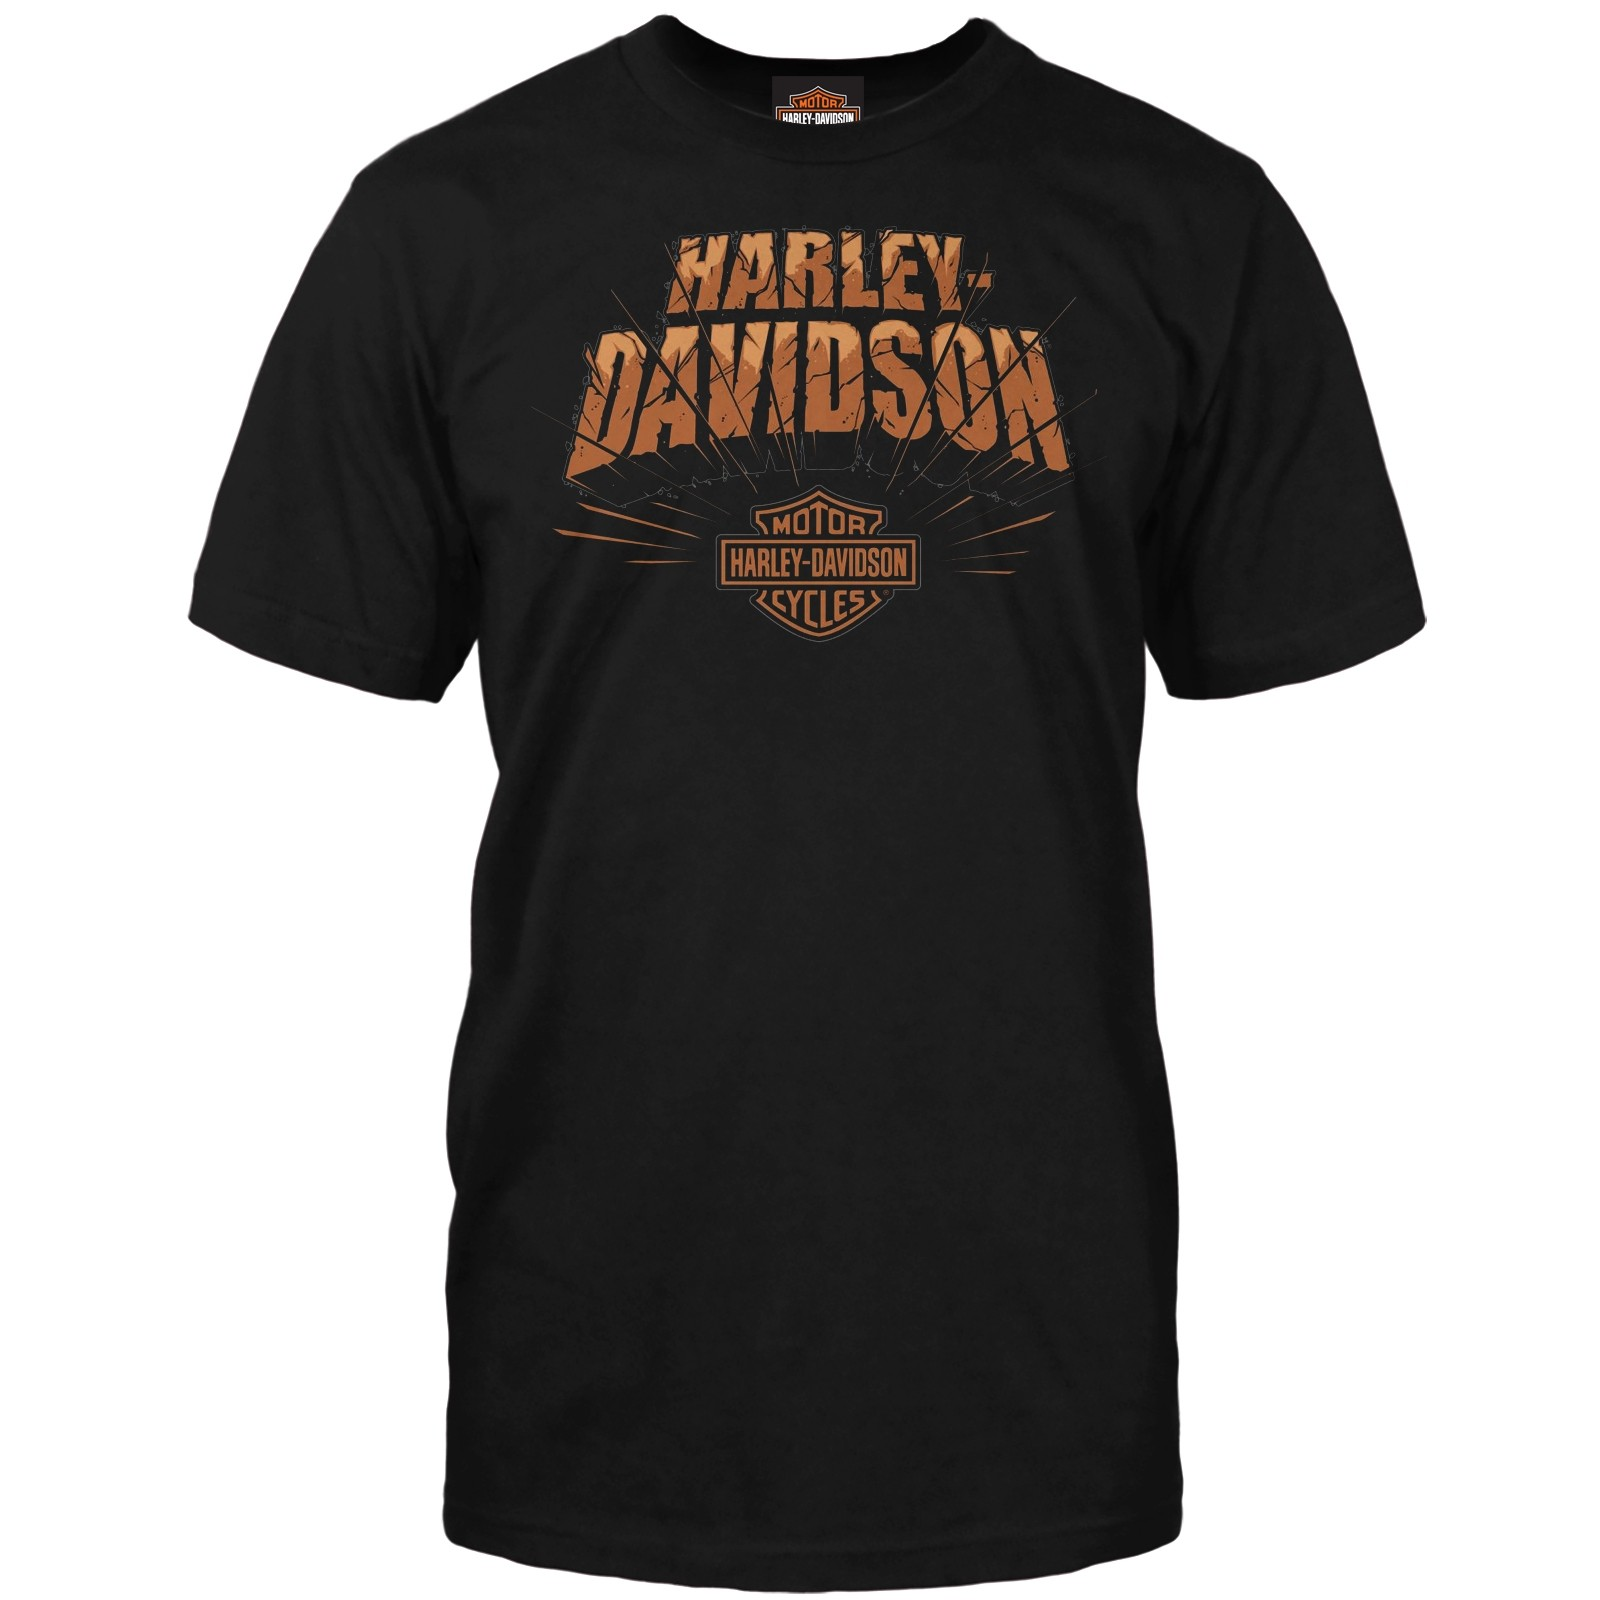 Harley-Davidson Men's Short-Sleeve Graphic Tee - Osan Air Base | Rock Splitter